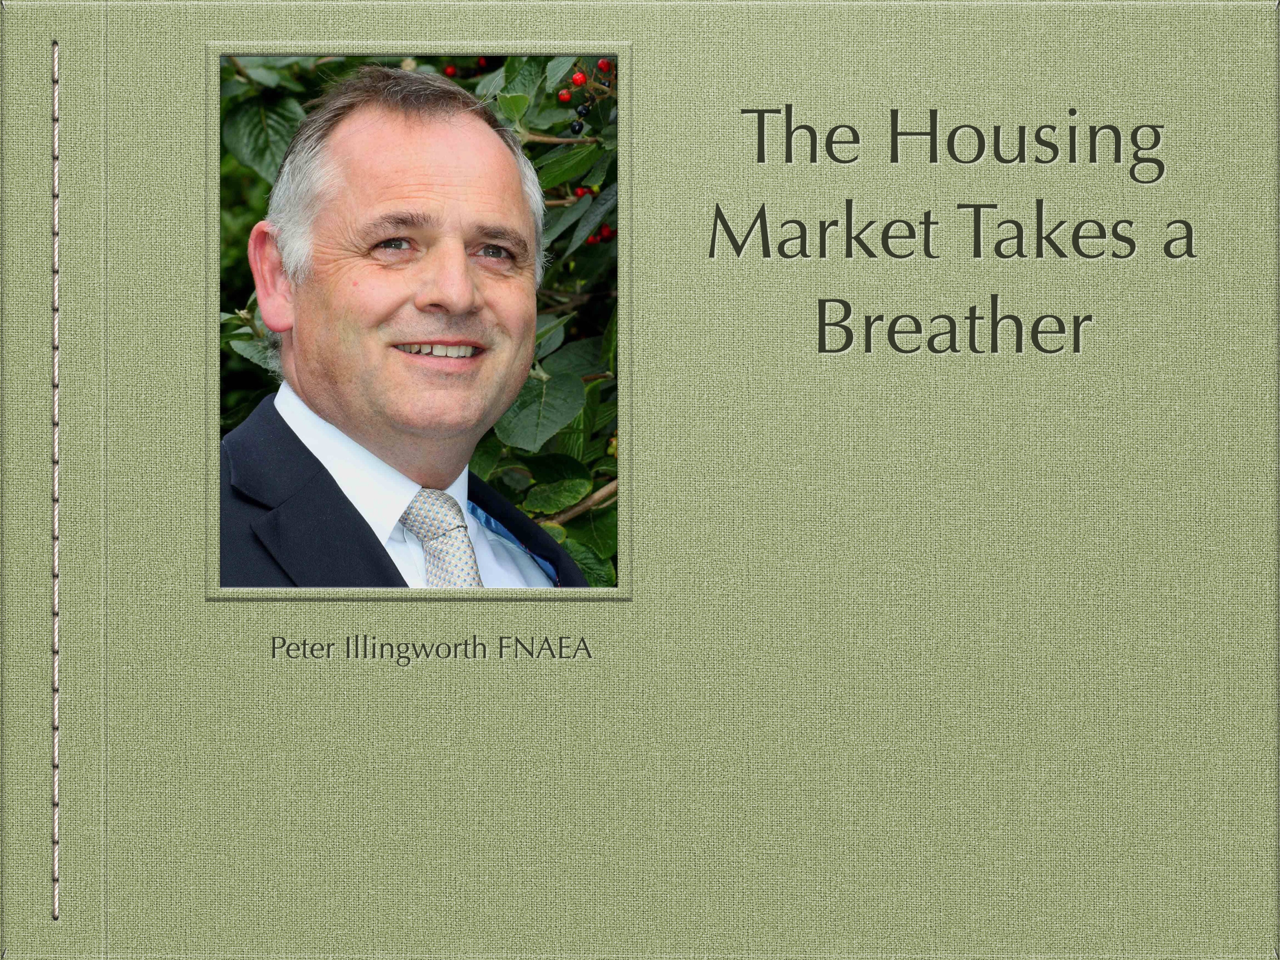 The Housing Market Takes a Breather